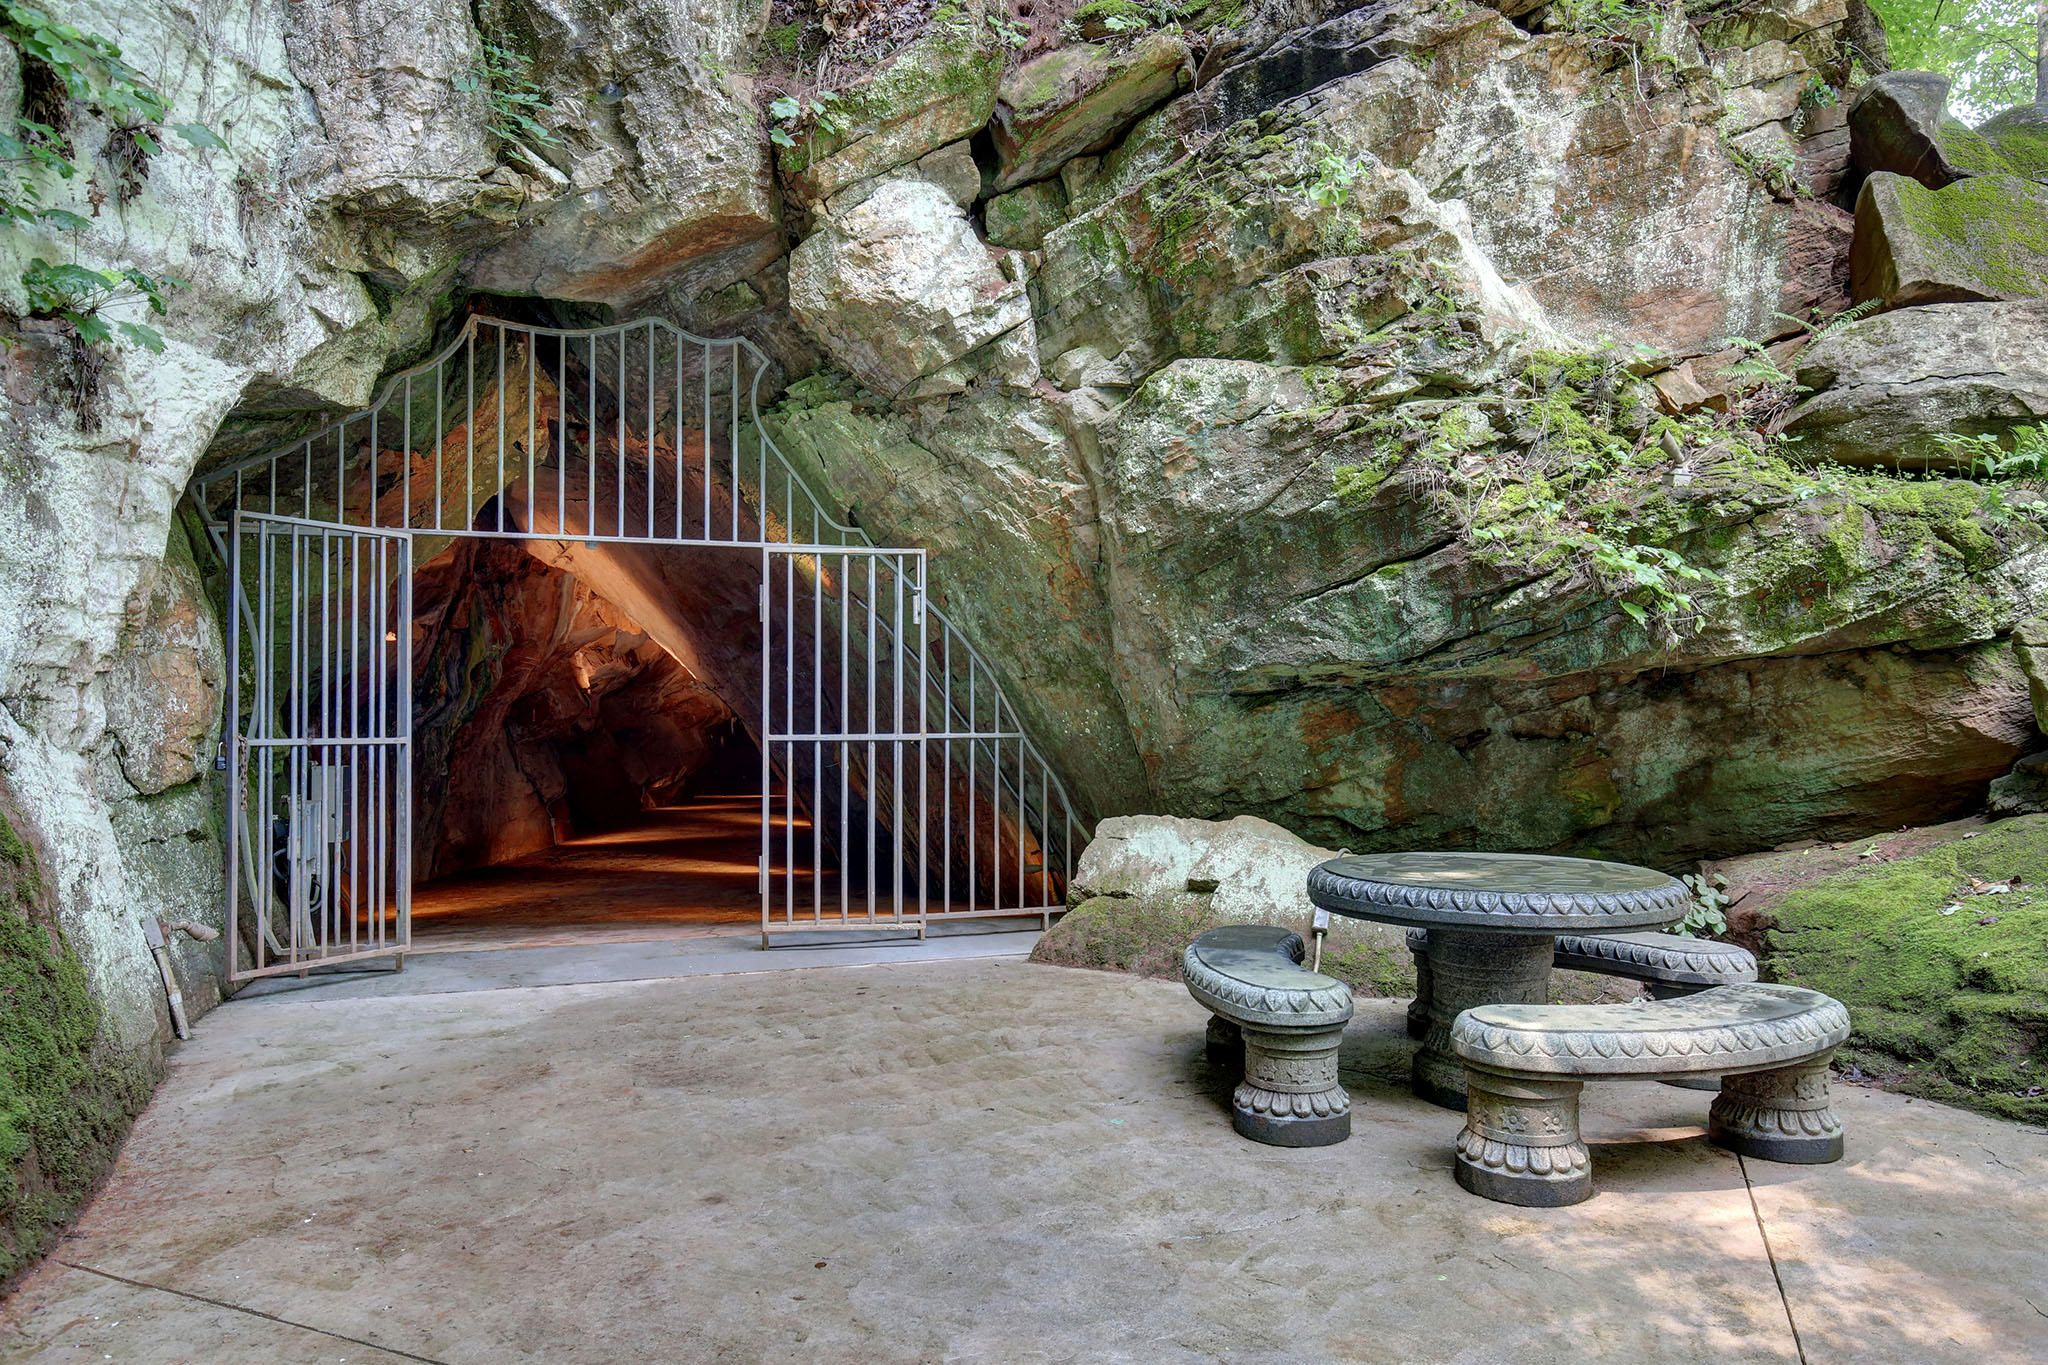 Entrance to Cave